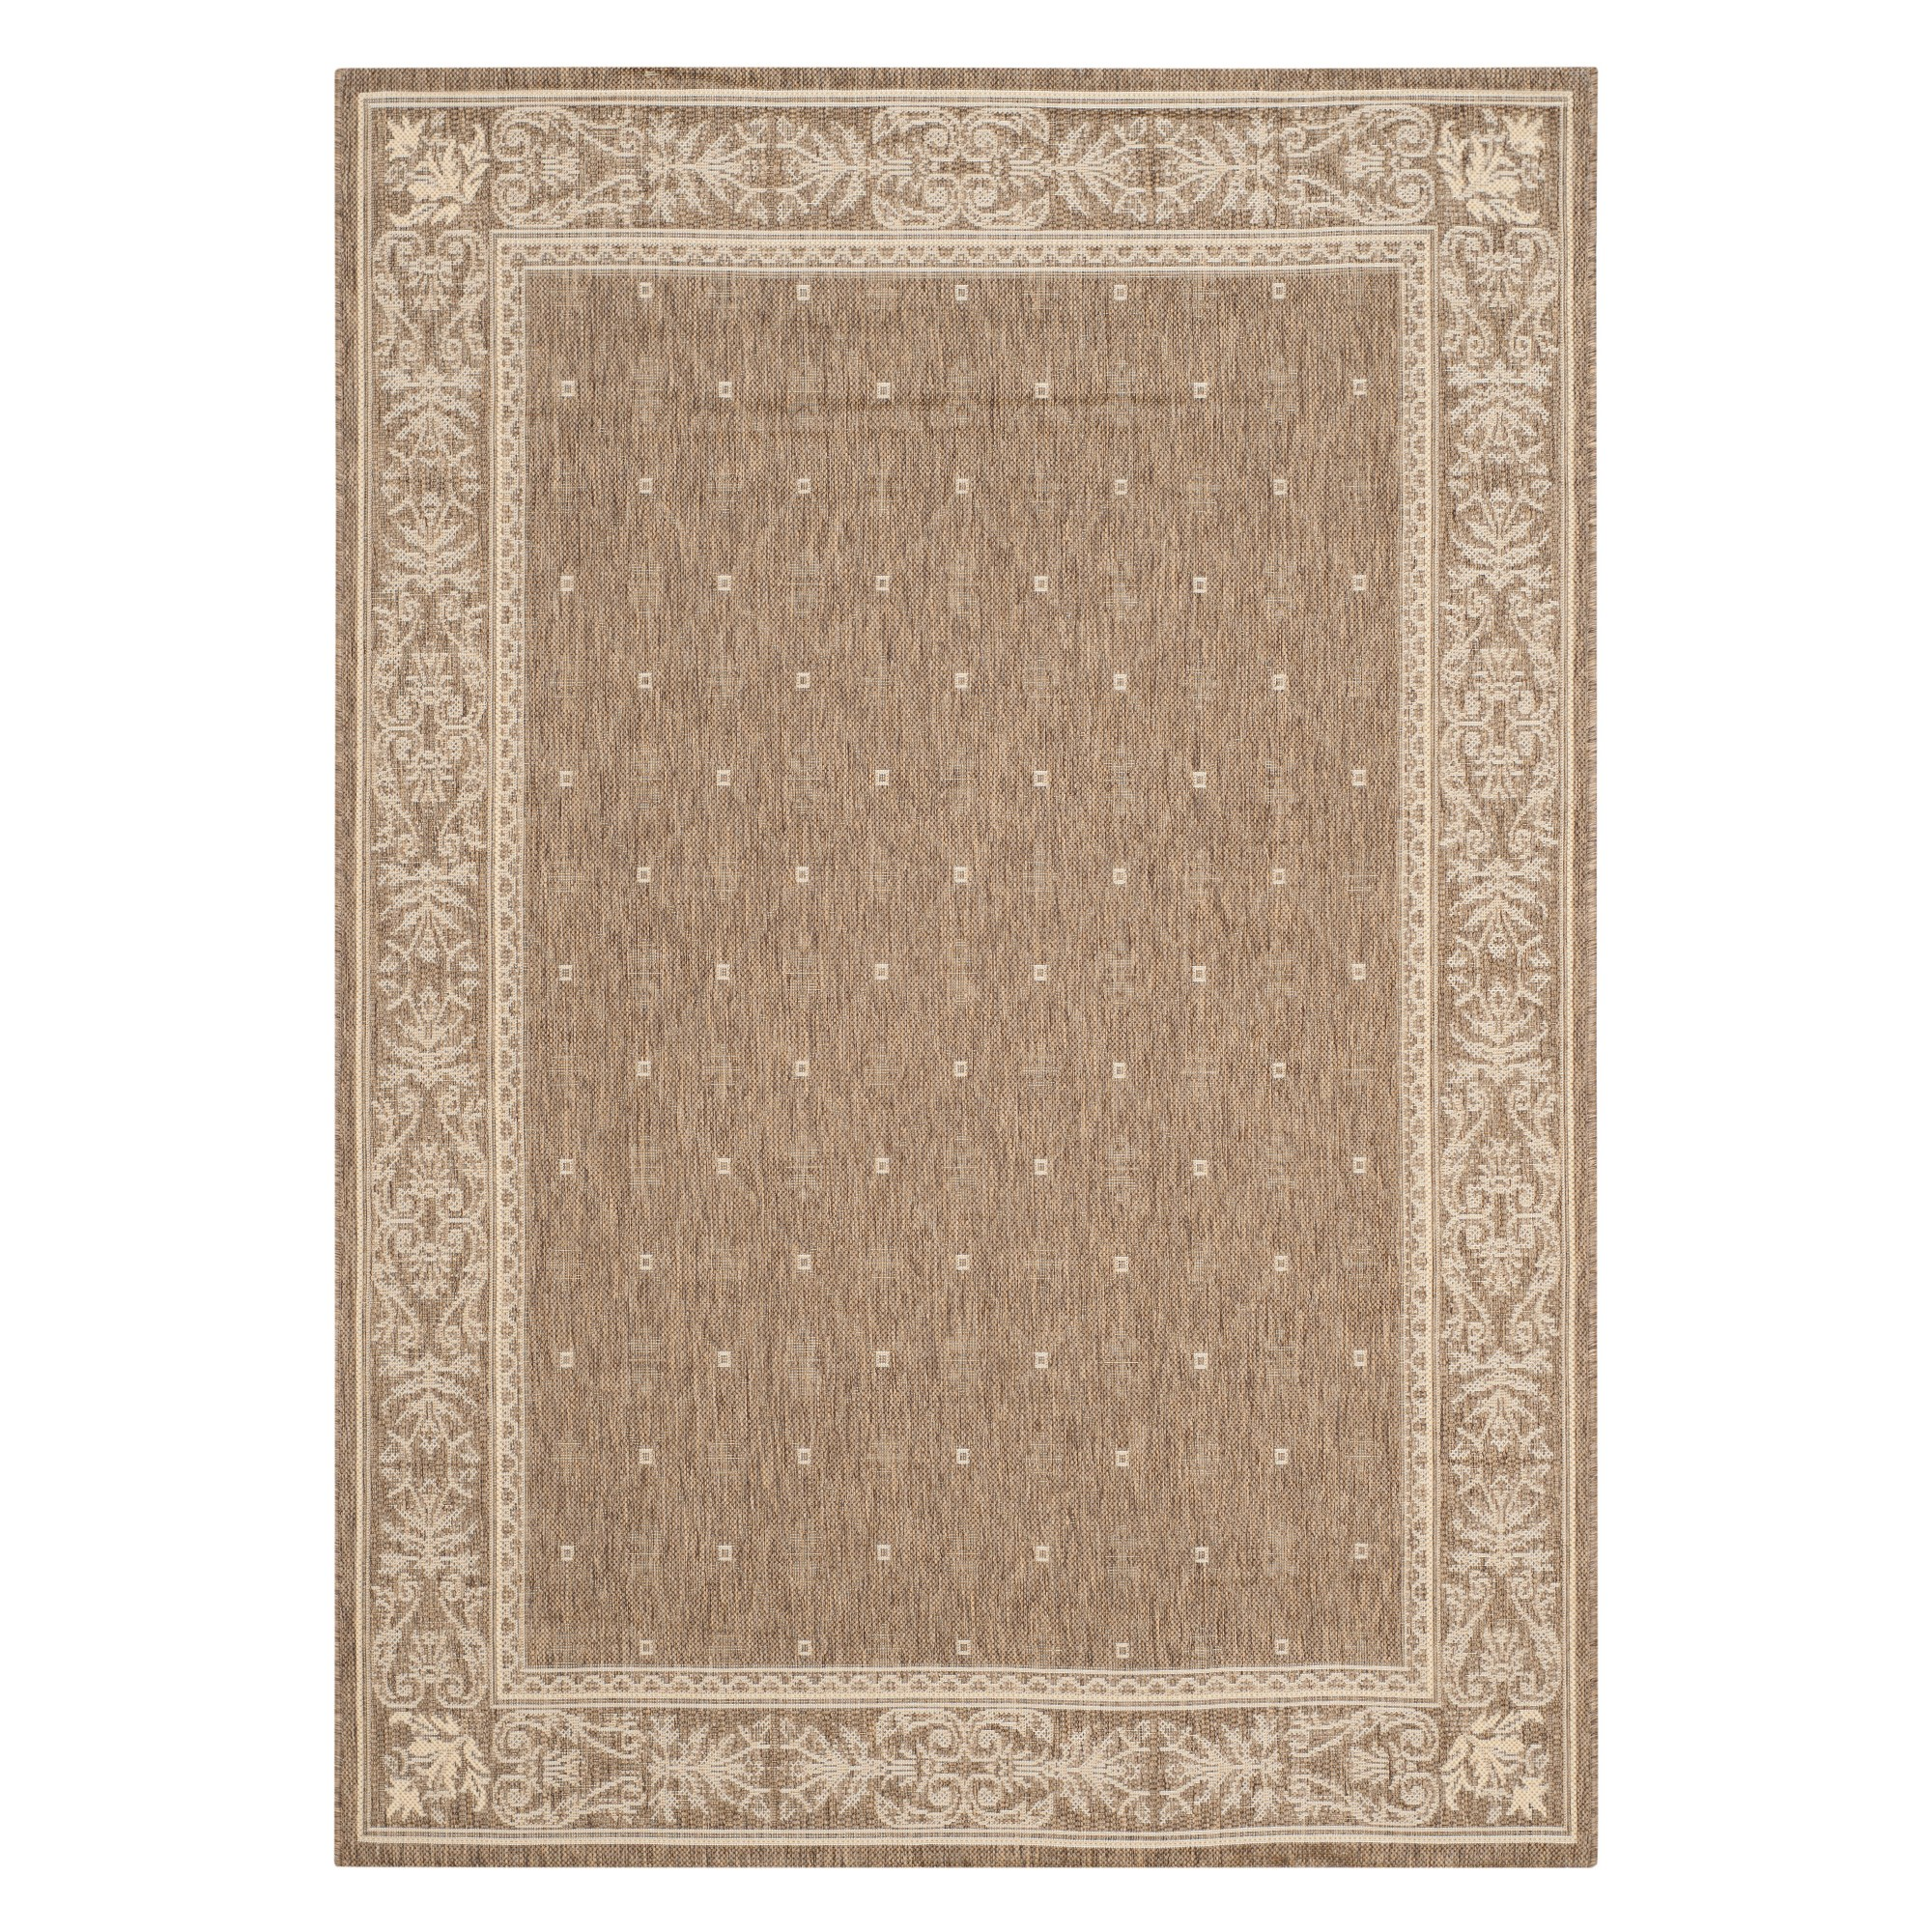 '6'7''X9'6'' Rectangle Herning Outdoor Rug Brown/Natural - Safavieh, Size: 6'7'' X 9'6'', Brown / Natural'